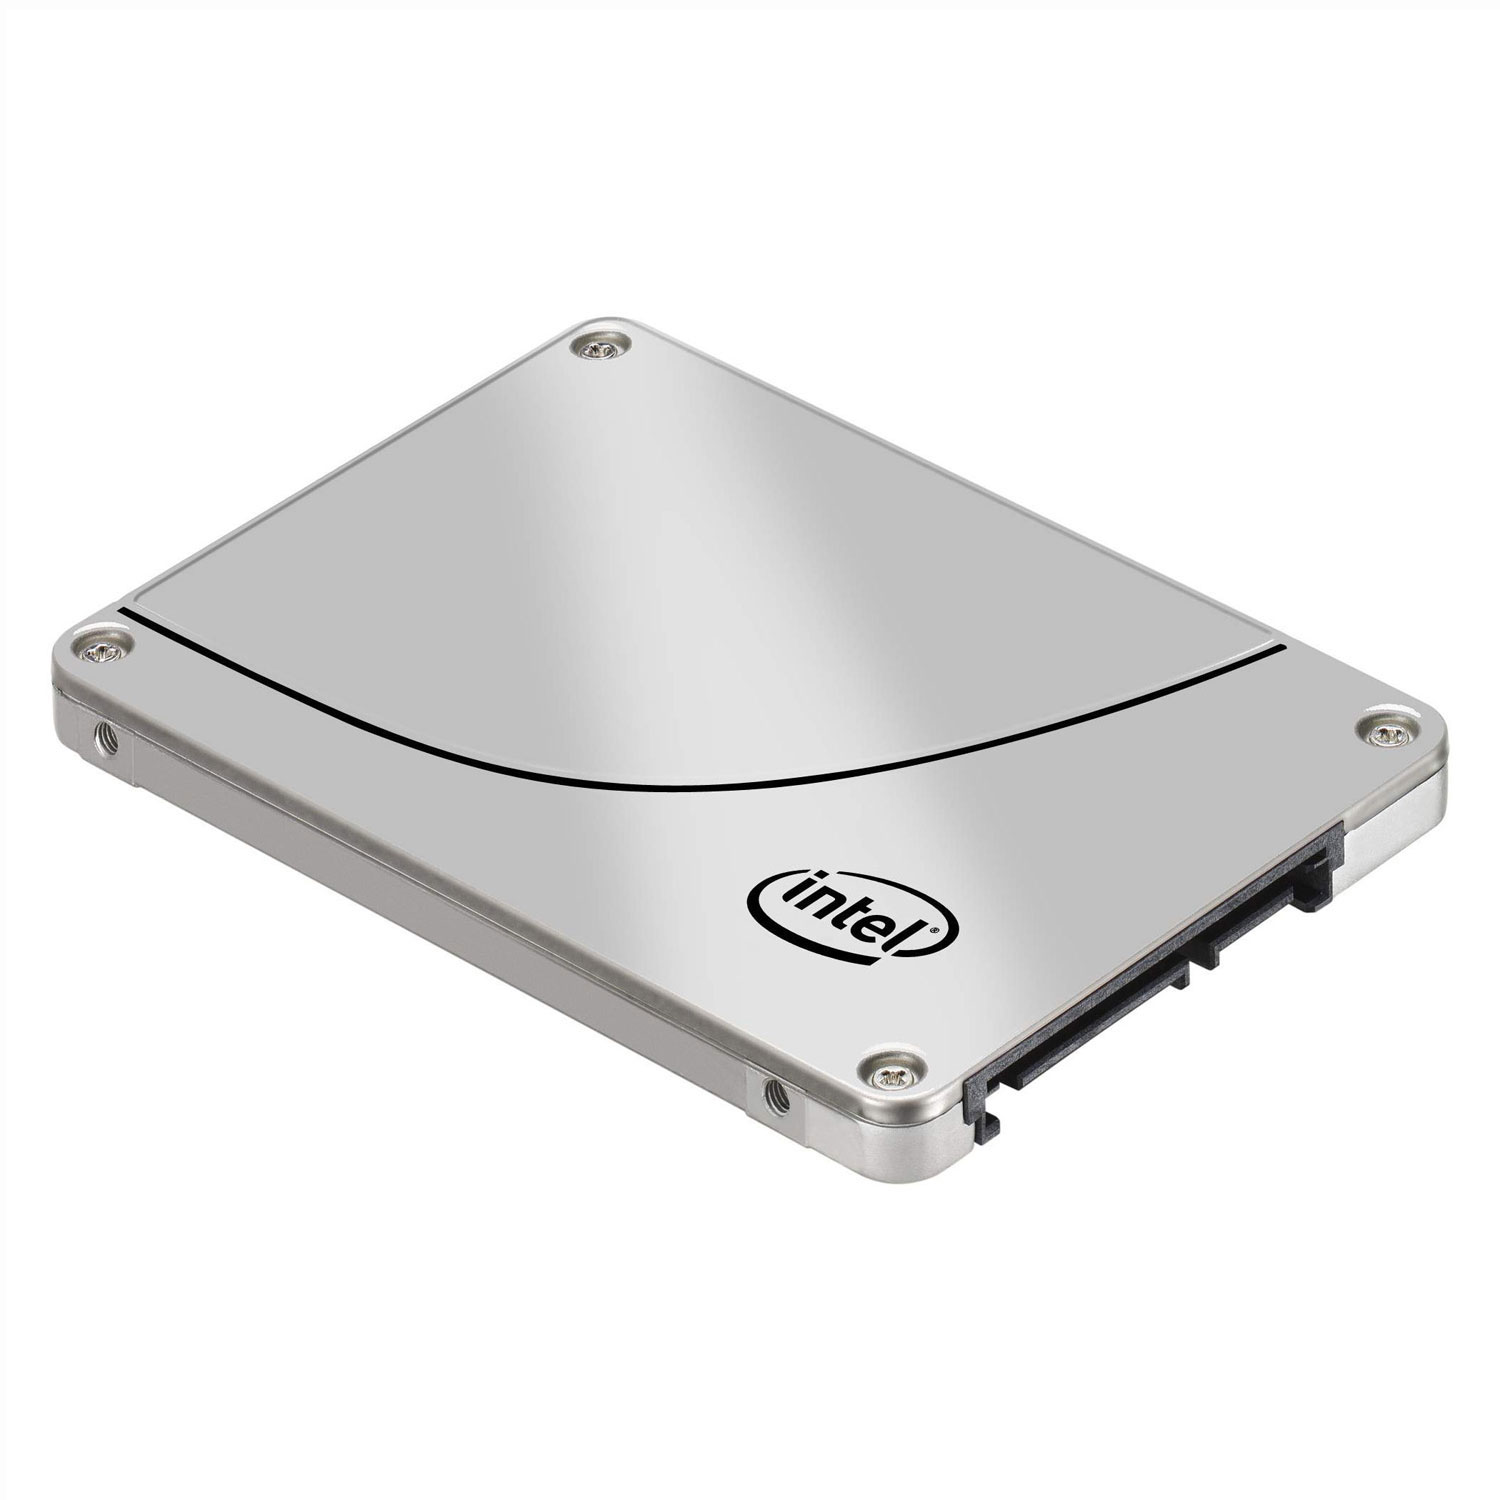 Intel® SSD DC S3510 Series (800GB, 2.5in SATA 6Gb/s, 16nm, MLC) 7mm